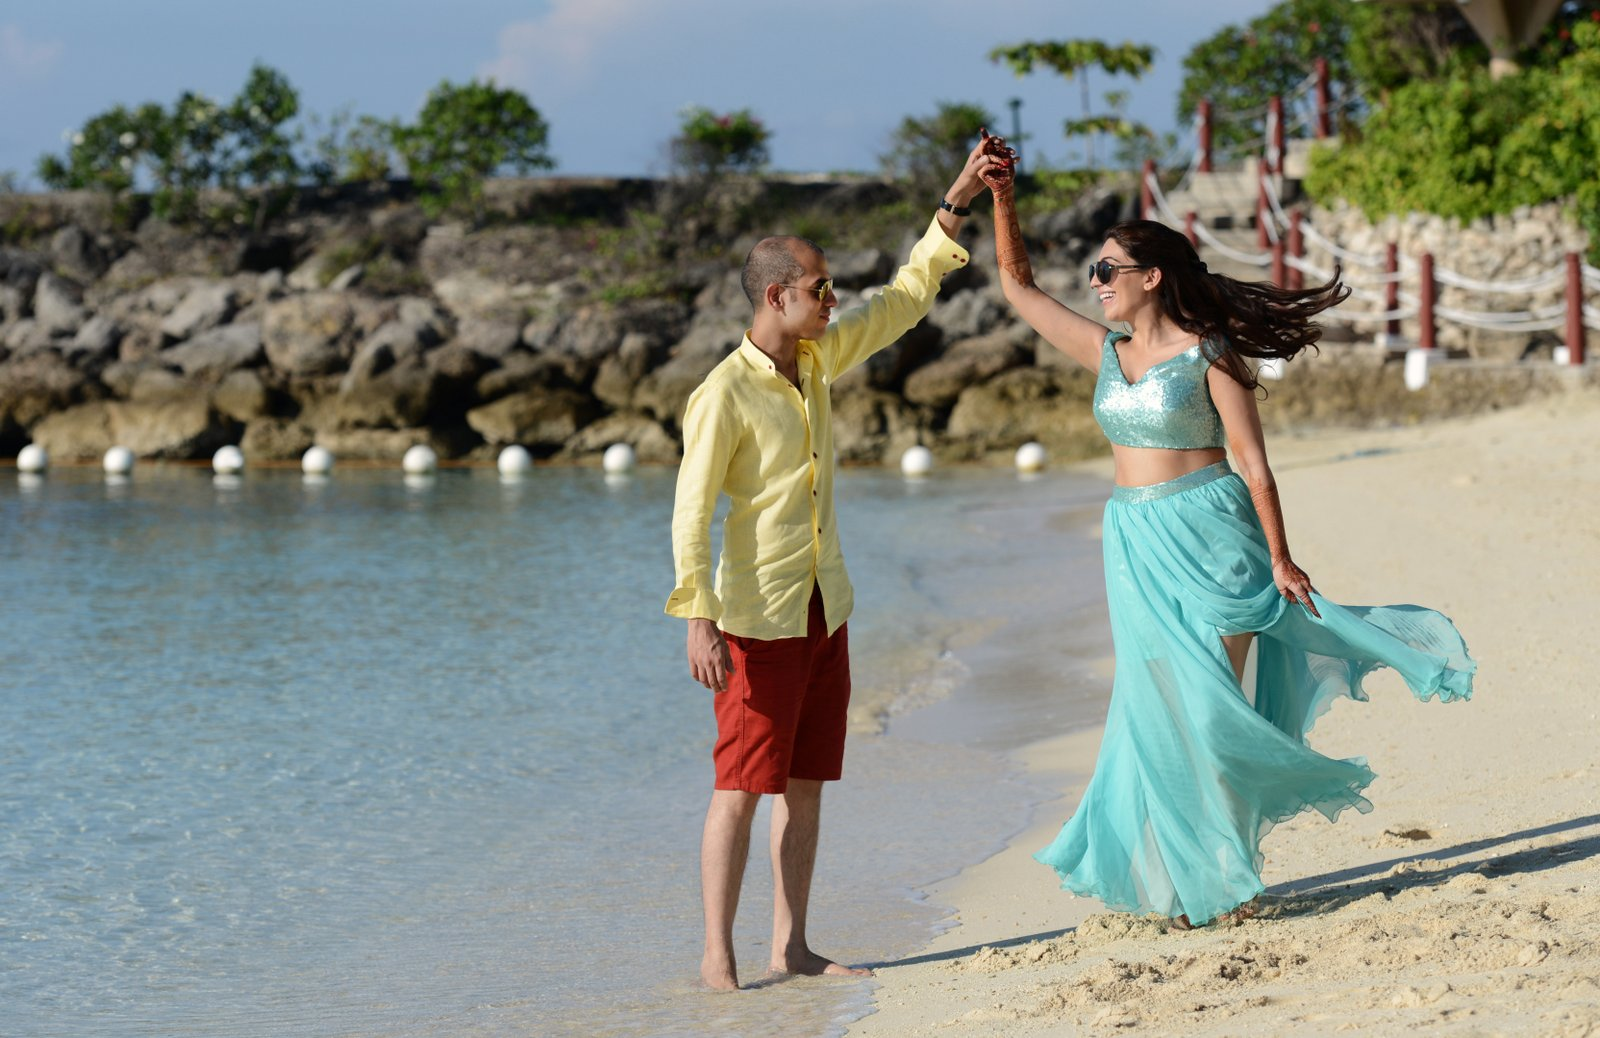 Couple dancing on the beach in Cebu, Philippines